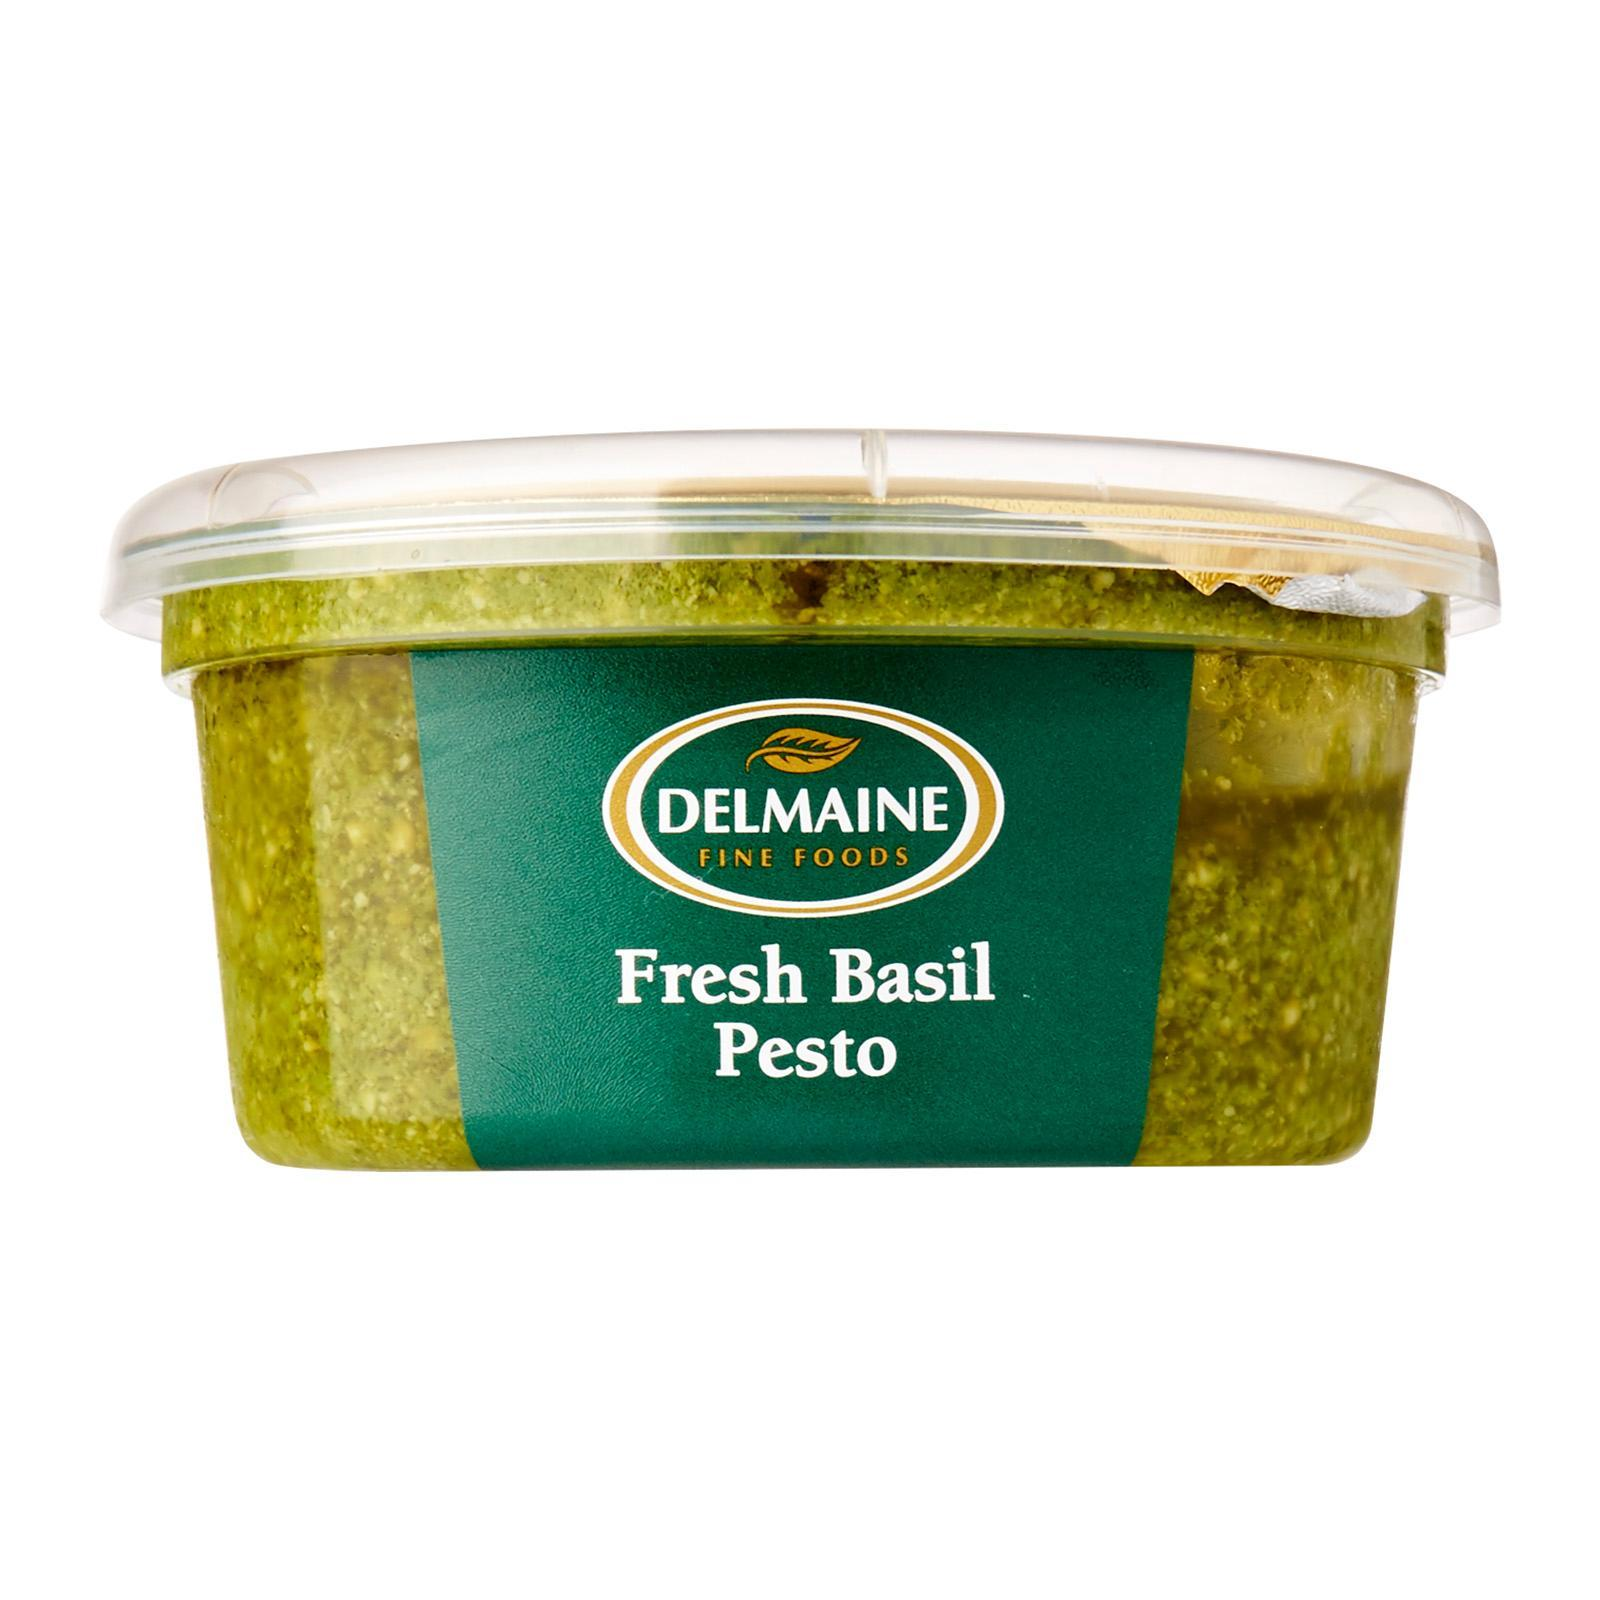 Delmaine Traditional Basil Pesto By Redmart.